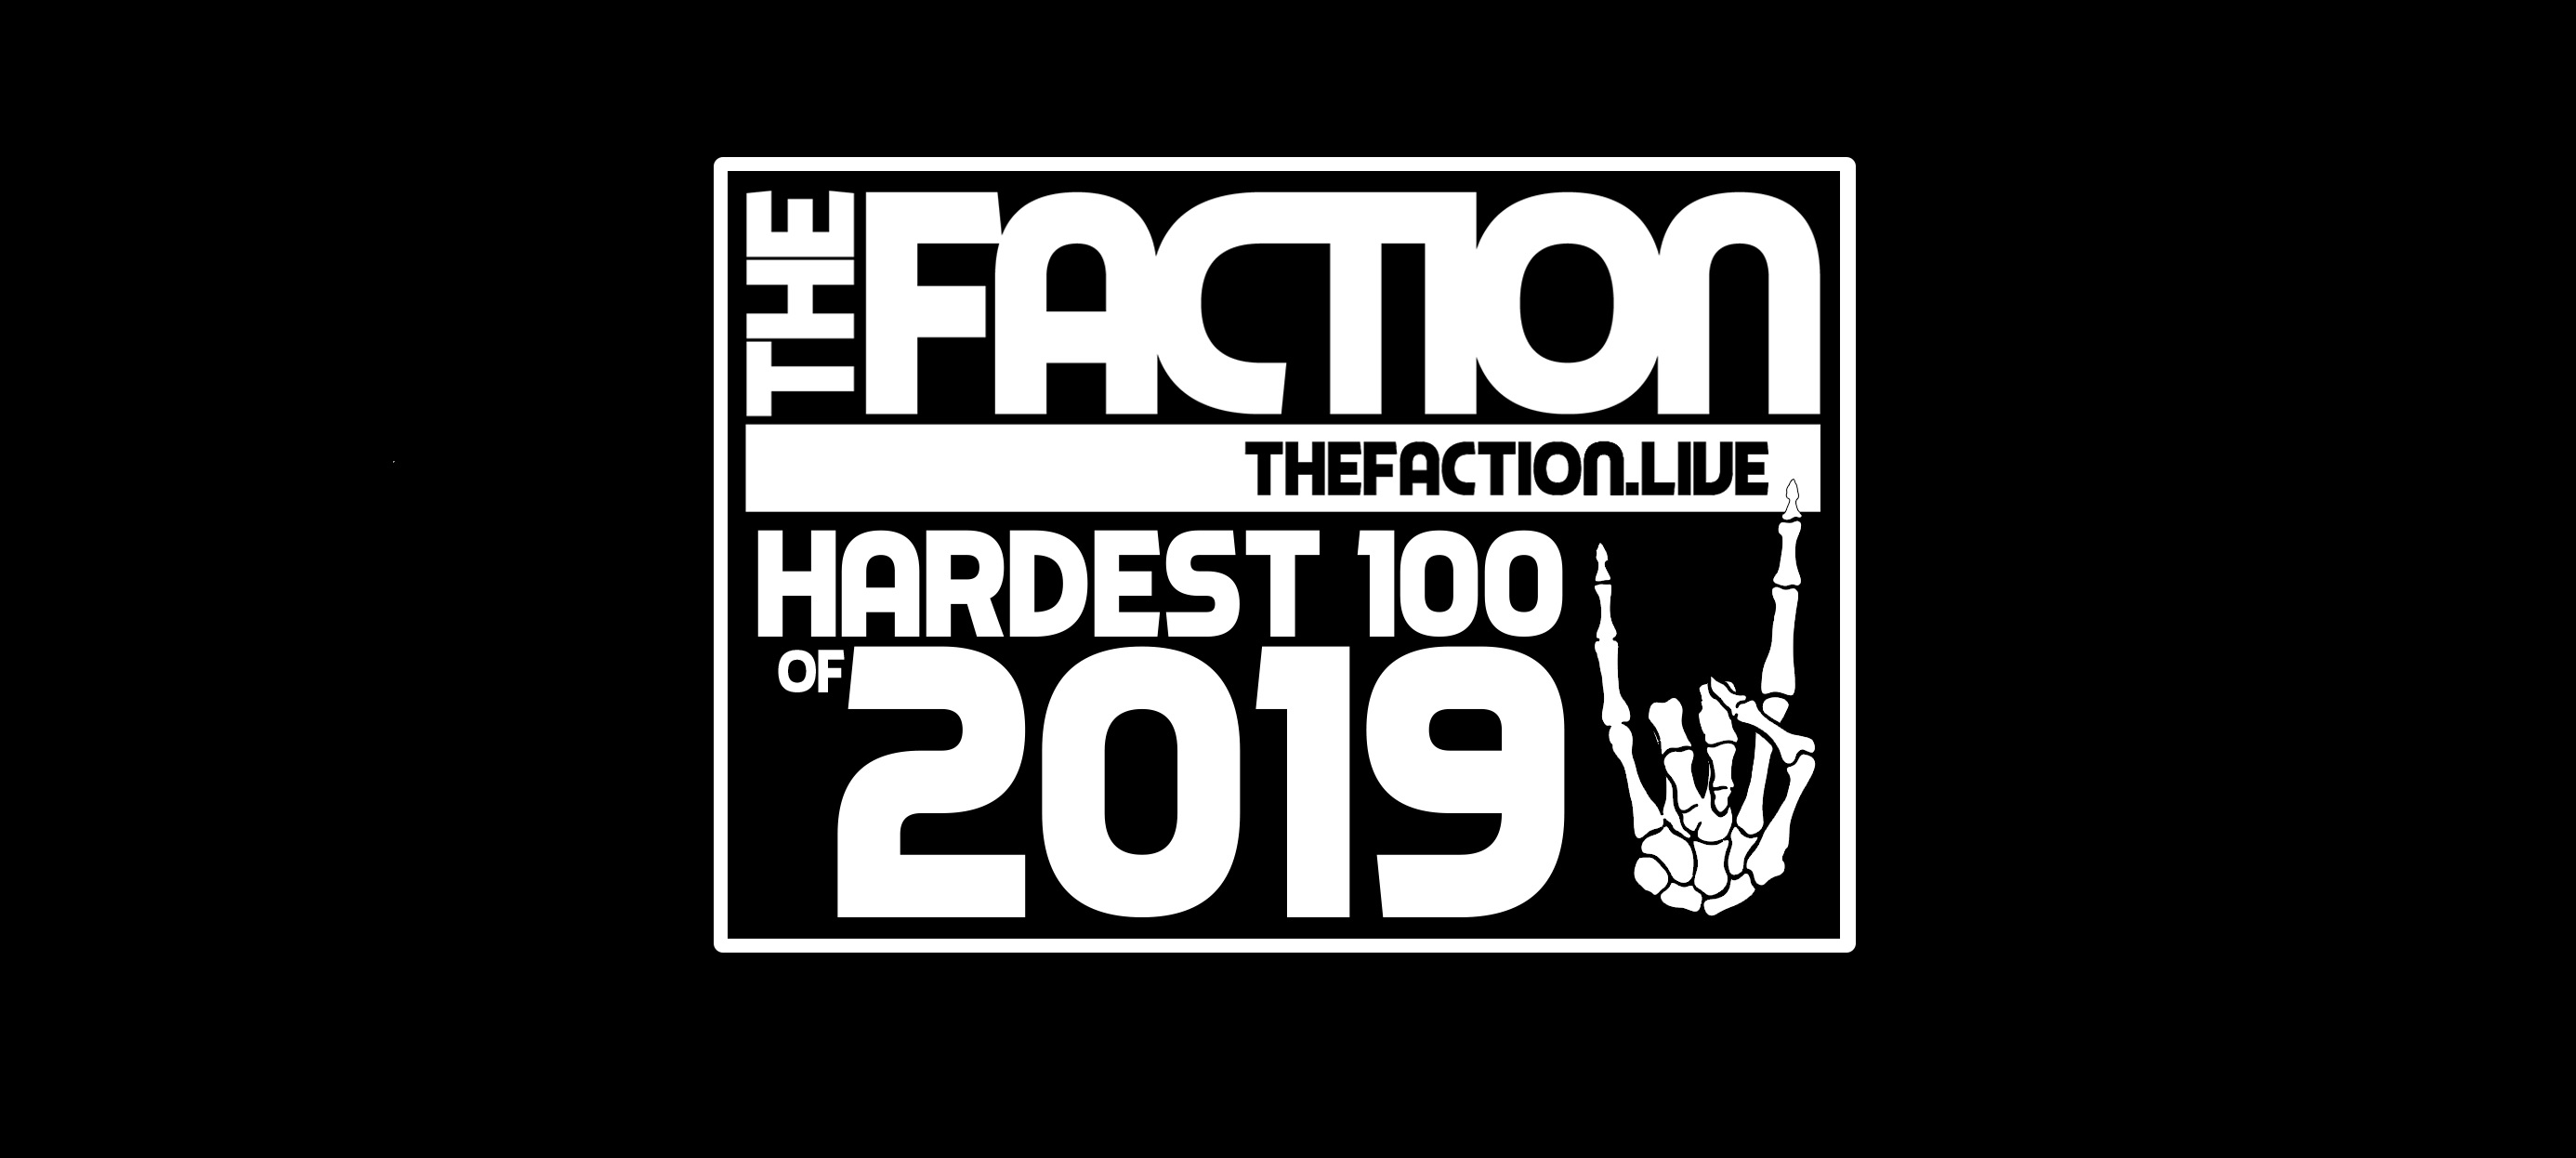 hardest 100 2019 coming soon